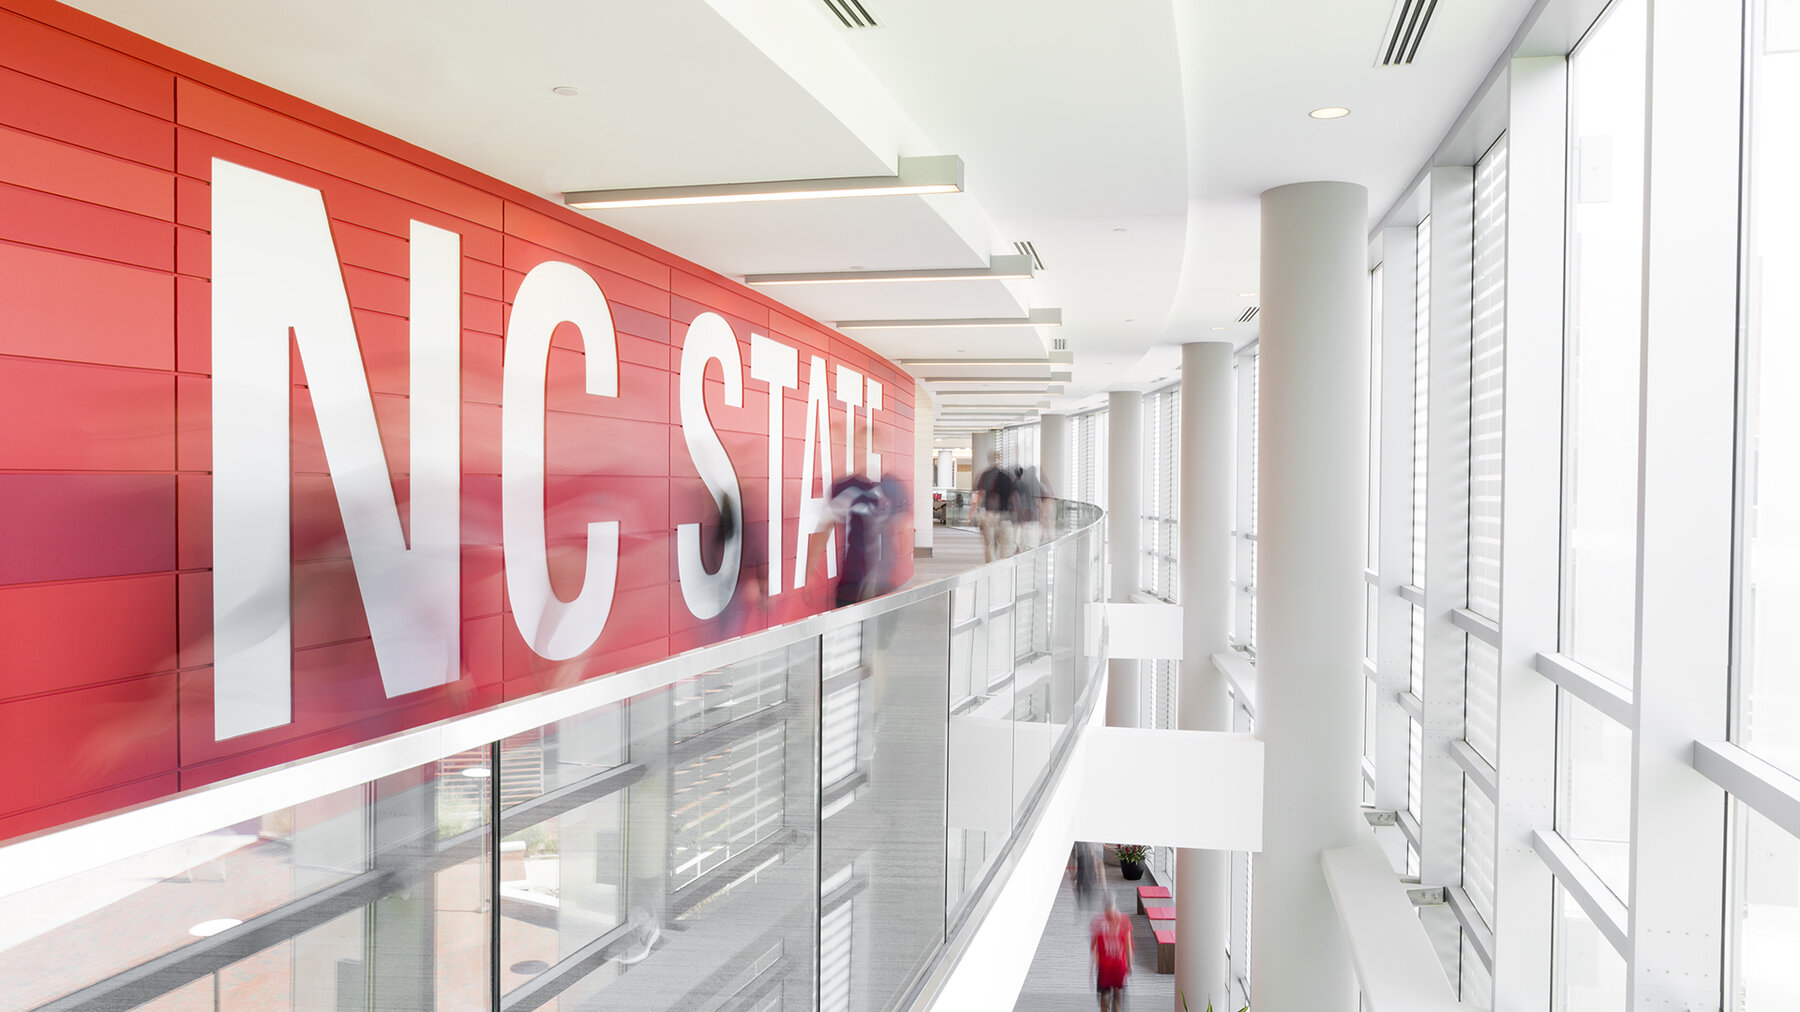 Nc state background image 1